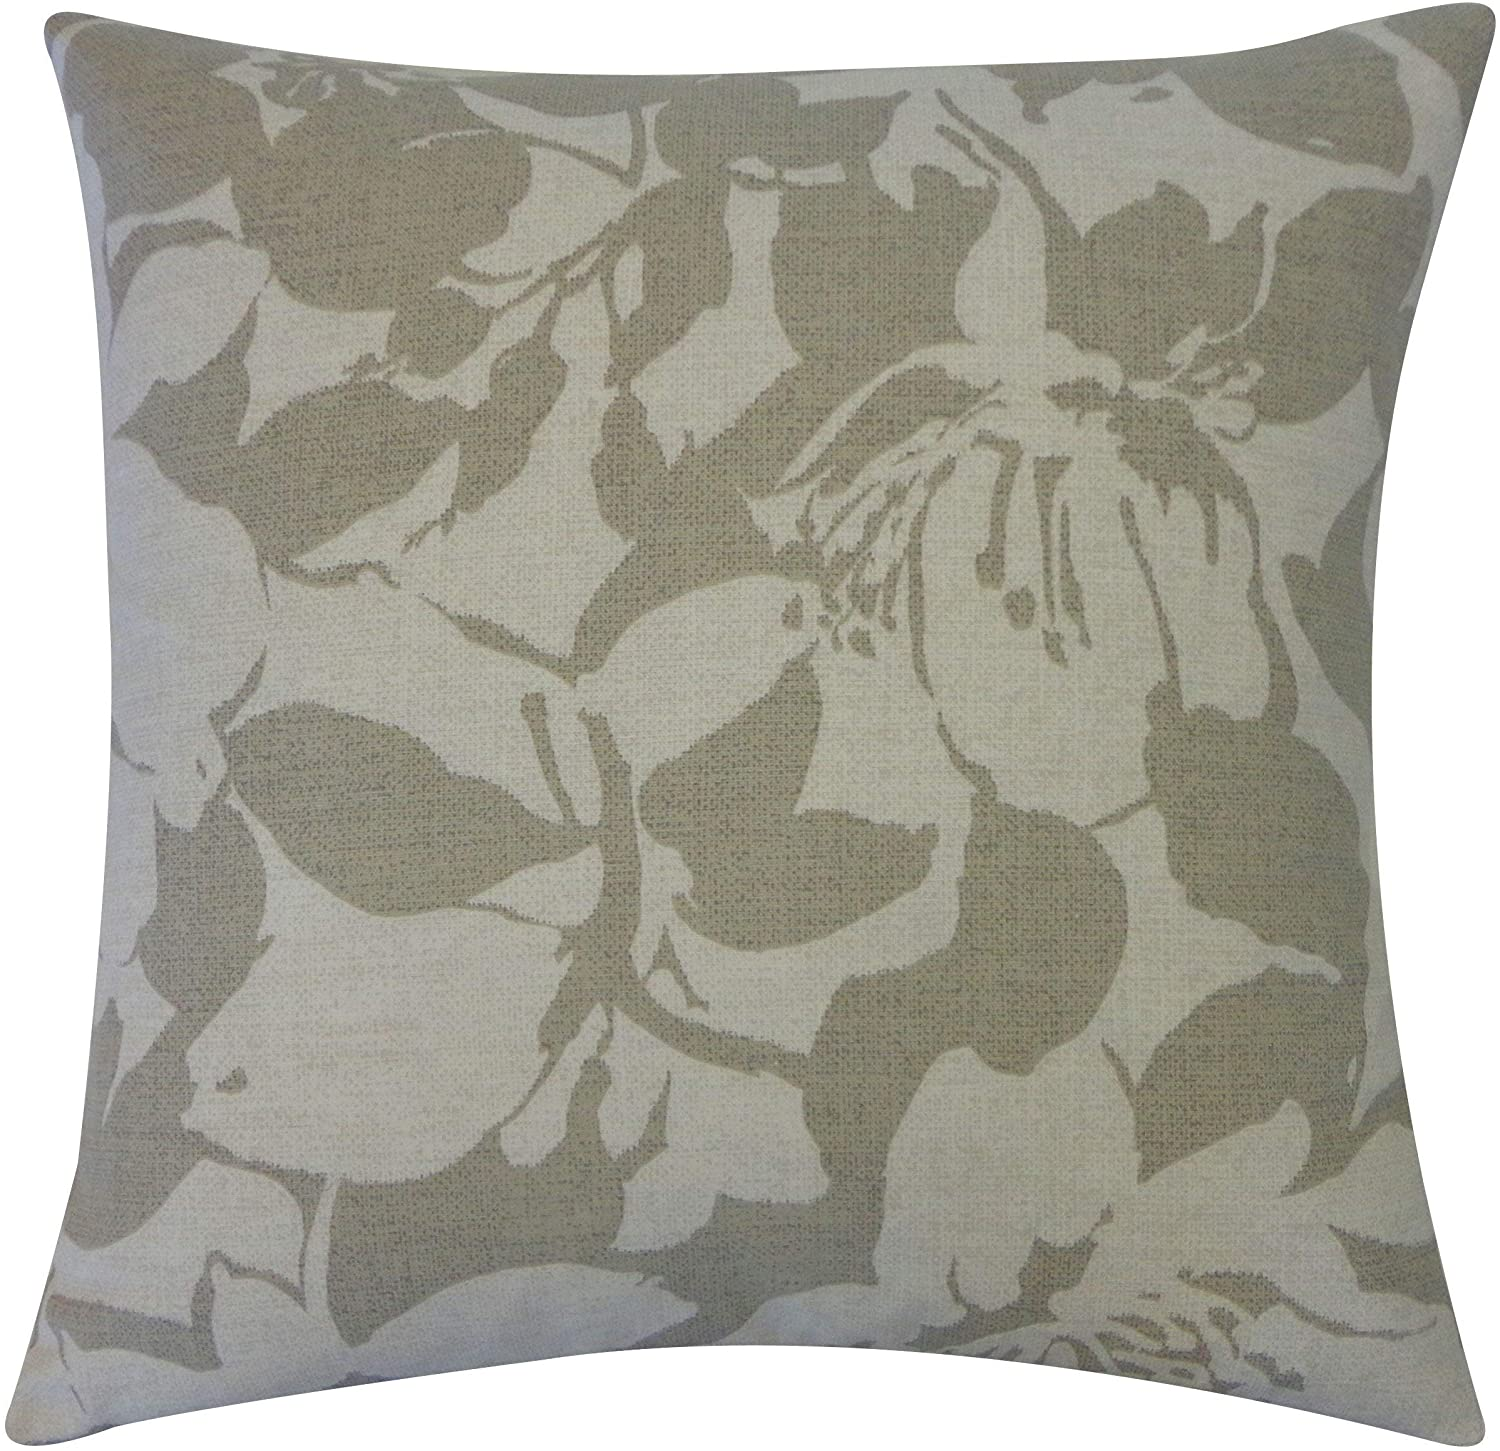 "Handmade Peony Gray Throw Pillow 20"" X Grey Cotton"